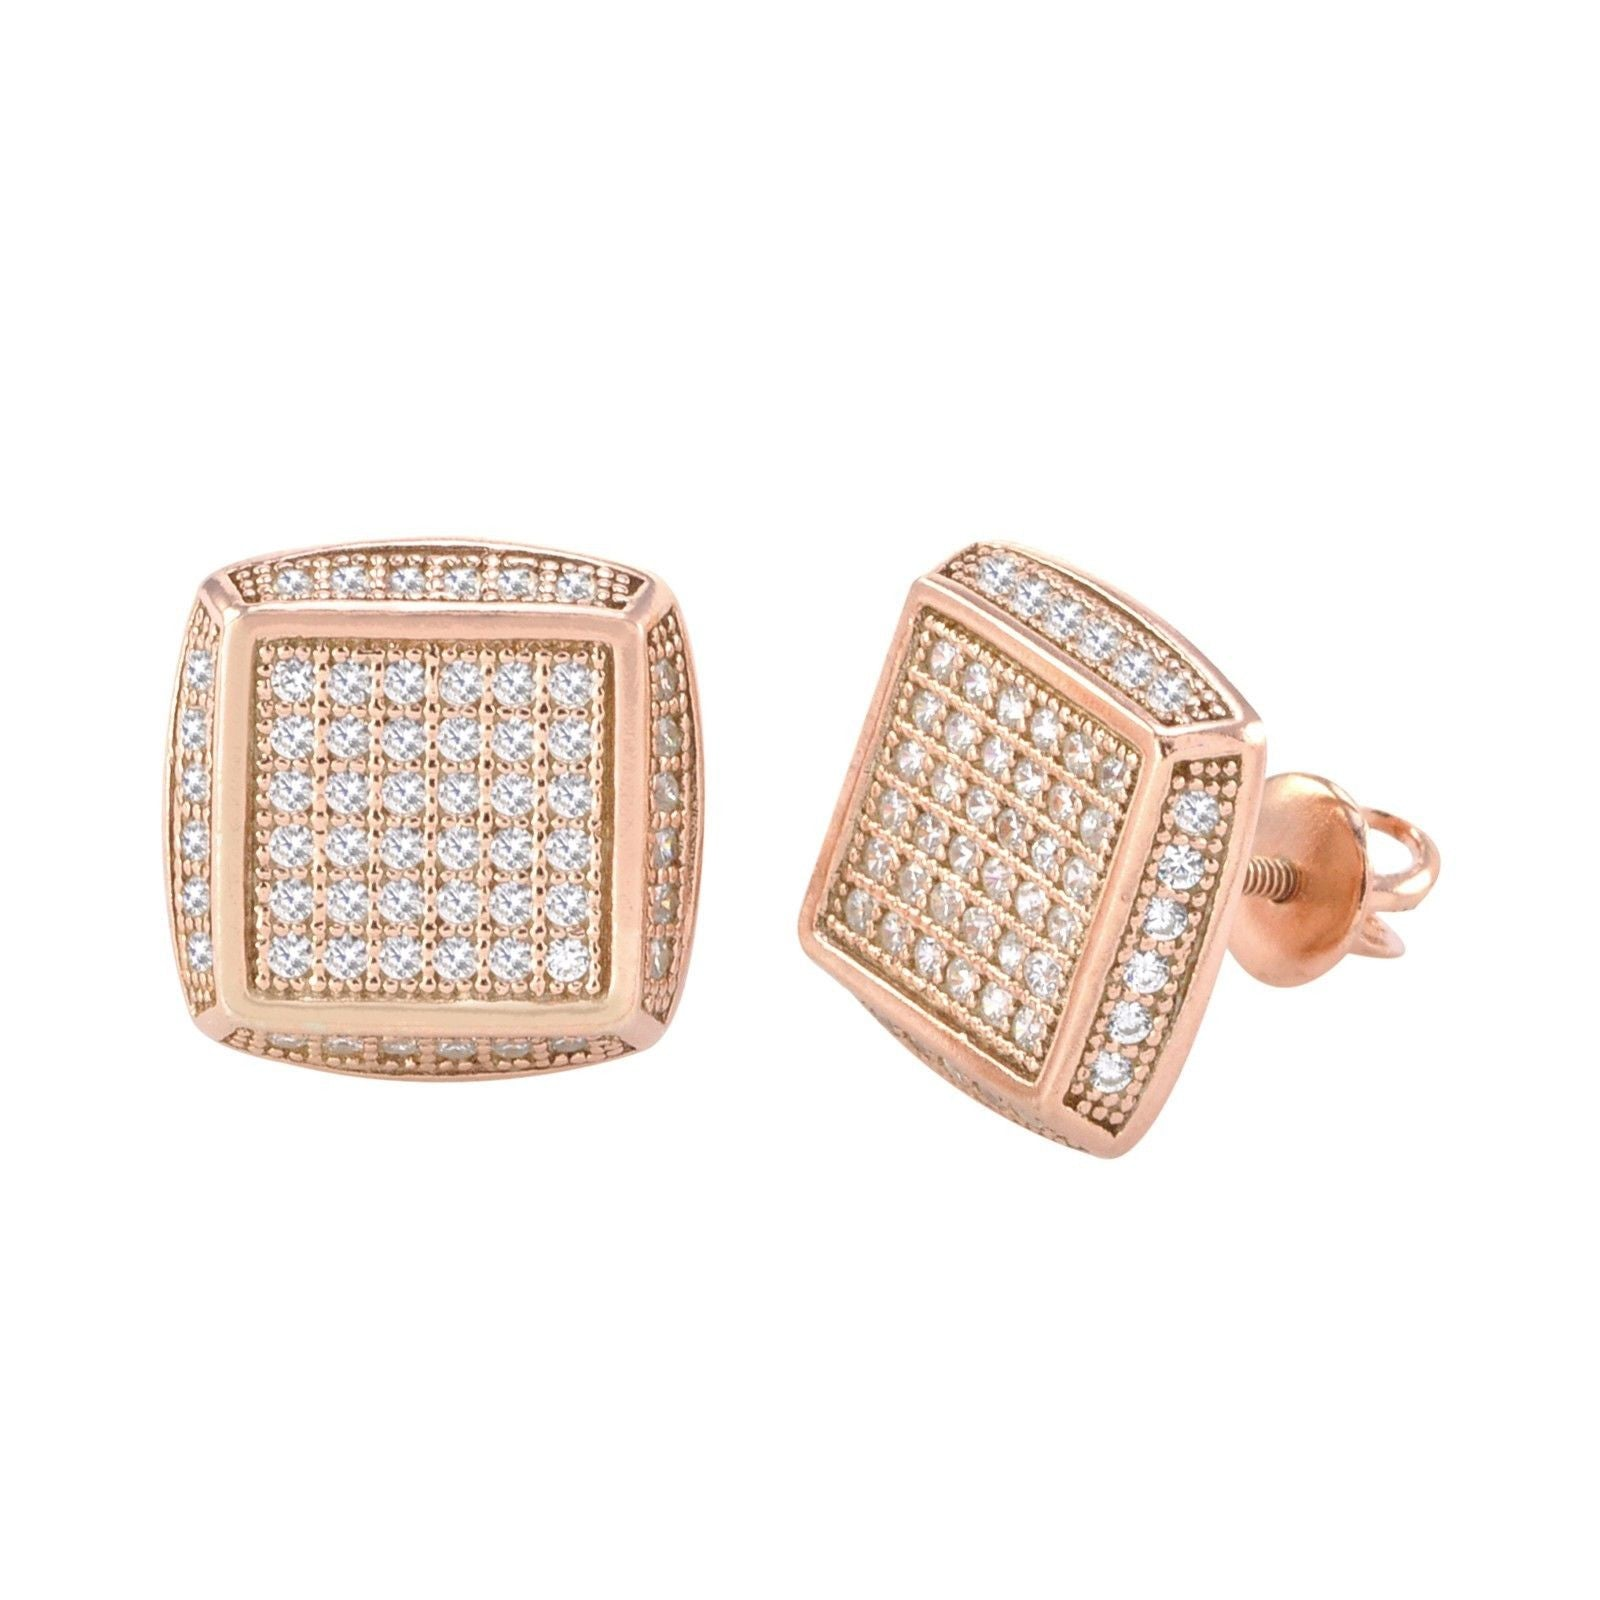 192fe82f4 Sterling Silver Rose Gold Plated CZ Cubic Zirconia Stud Screwback Earr |  Jewelryland.com